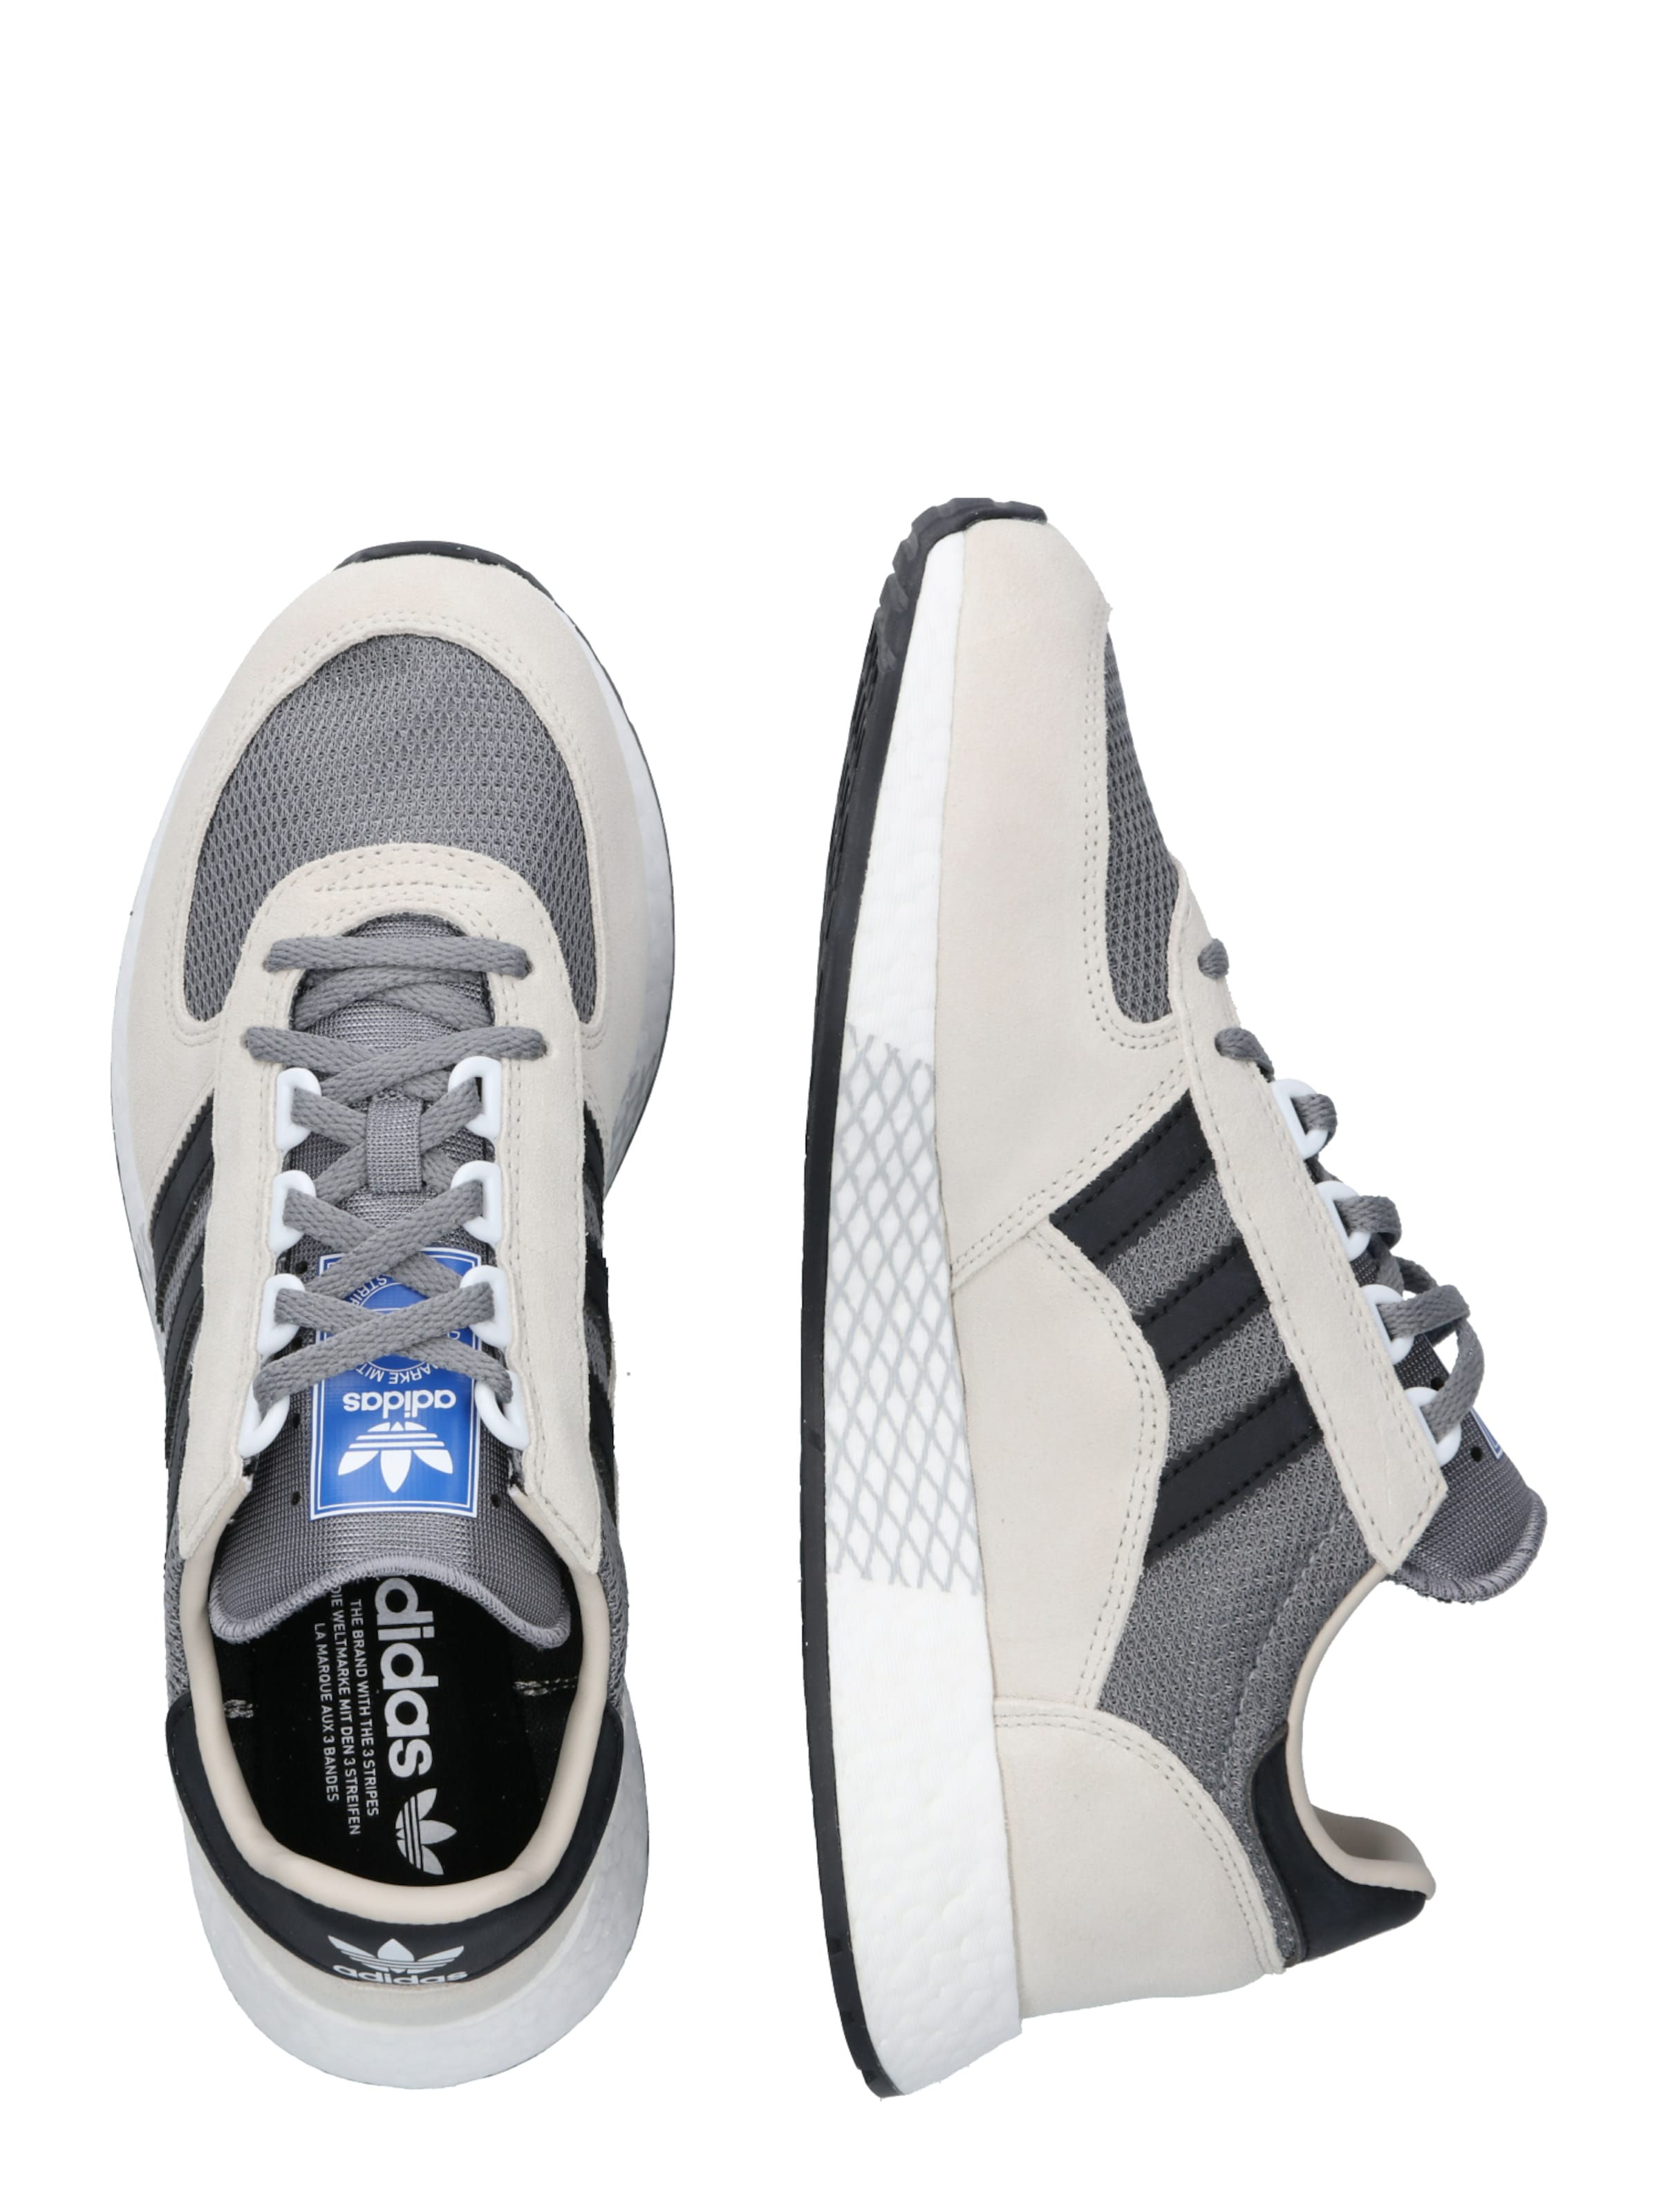 Adidas BeigeBraun In Tech' Originals 'marathon Sneaker Ov8nw0Nm